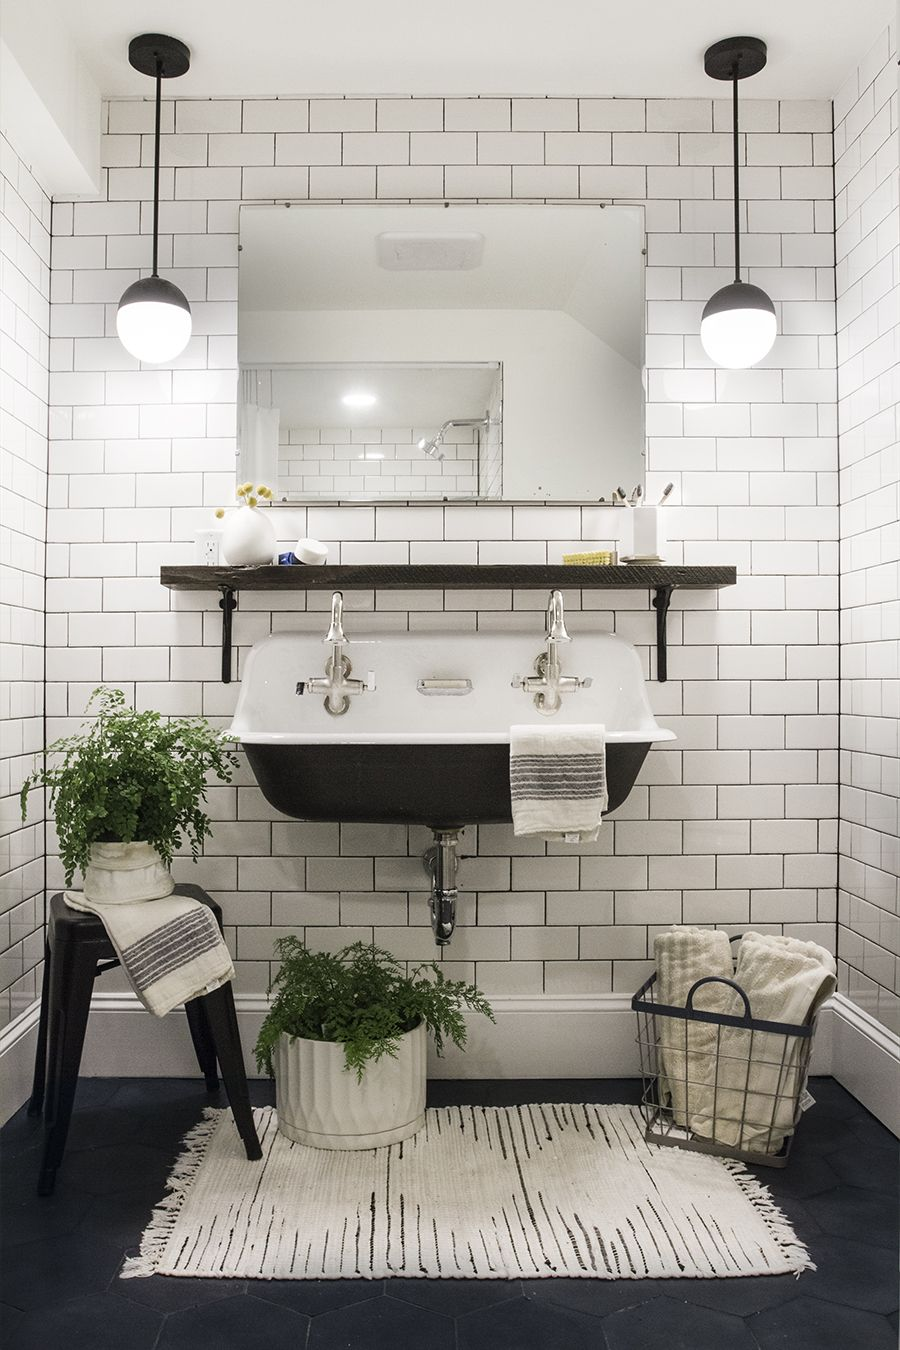 Incredibly Designed Bathroom With White Tile A Bar For Essentials